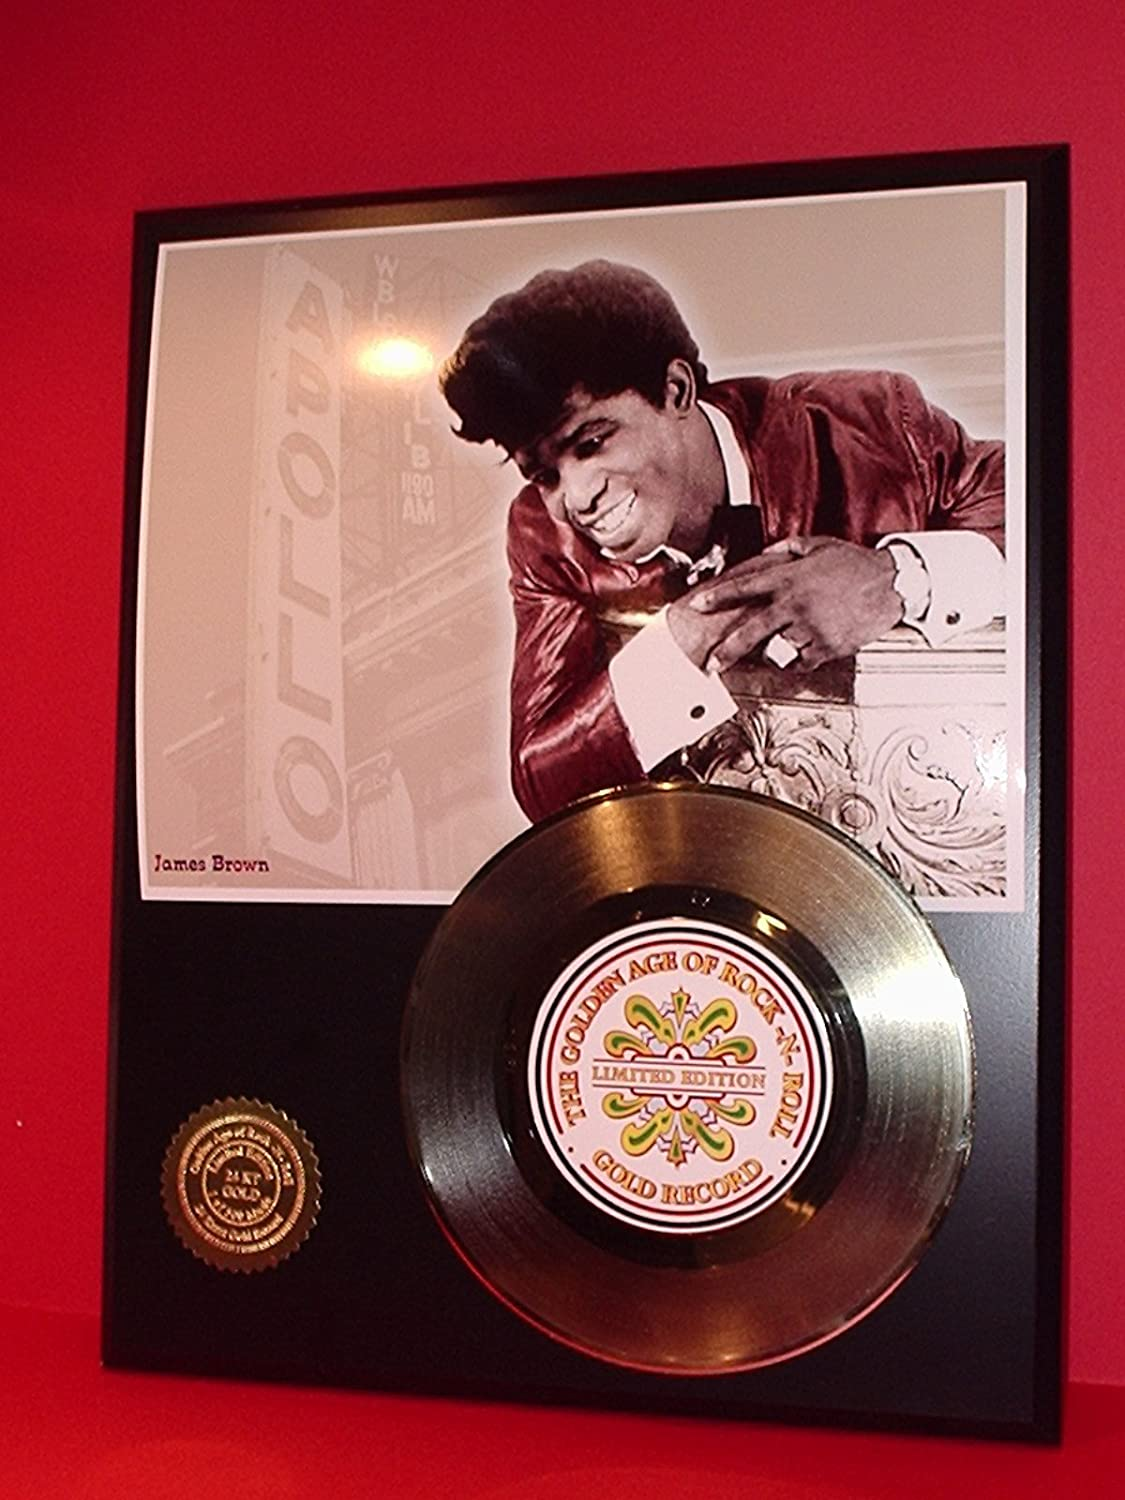 James Brown 24Kt Gold Record LTD Edition Display Gold Record Outlet